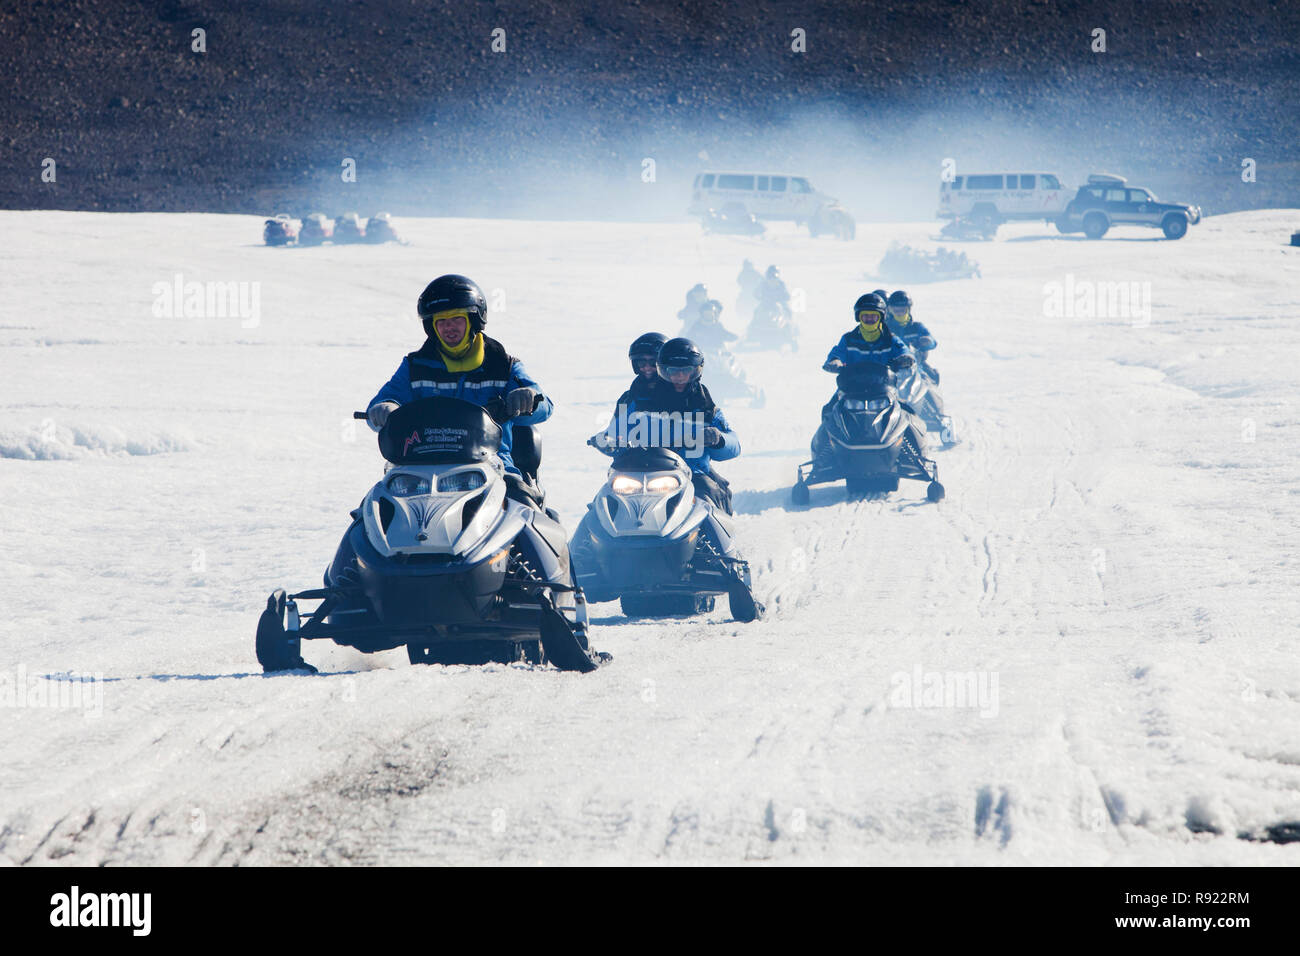 Tourists riding through a stinking fog of exhaust fumes from skidoos on the Langjokull ice sheet in Iceland. Like all of Iceland's glaciers it is retreating rapidly due to climate change. Scientists predict that all Icelands glaciers will be gone within 100 years. It is rather ironic that the tour guide mentioned  they have to drive further to reach the ice sheet every year. - Stock Image